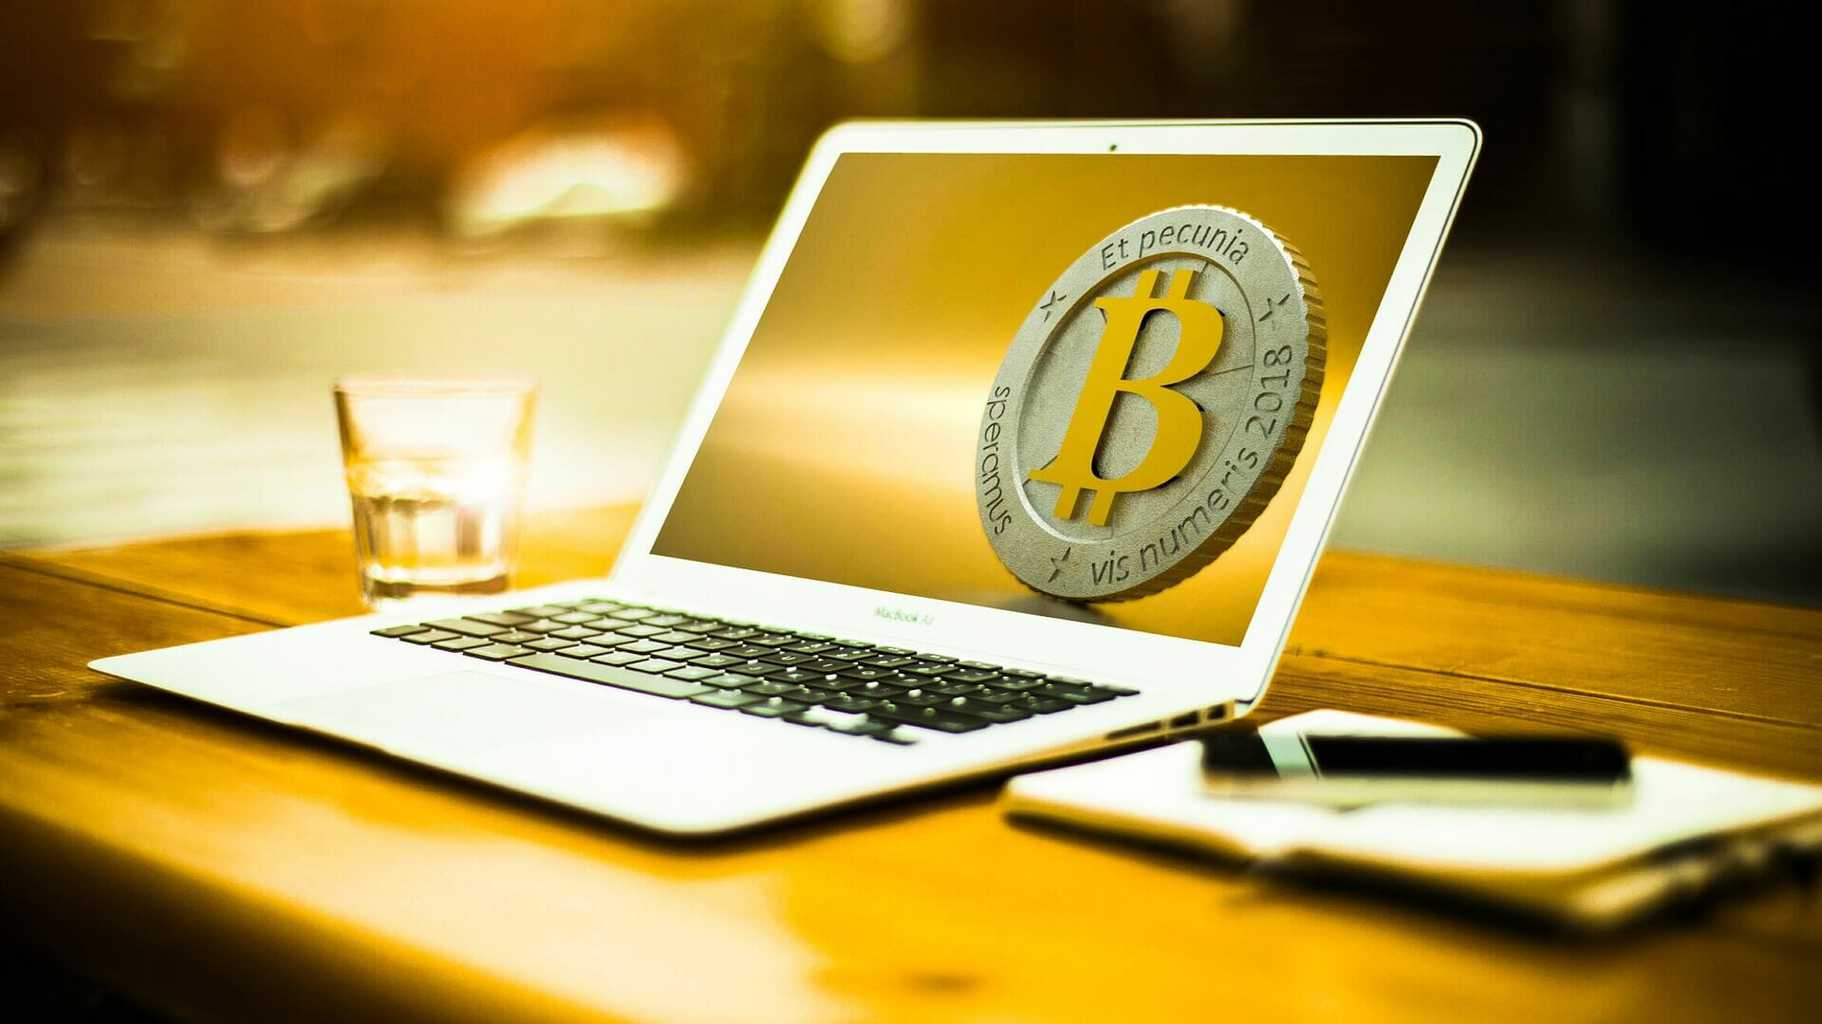 Steps to get started with bitcoin trading